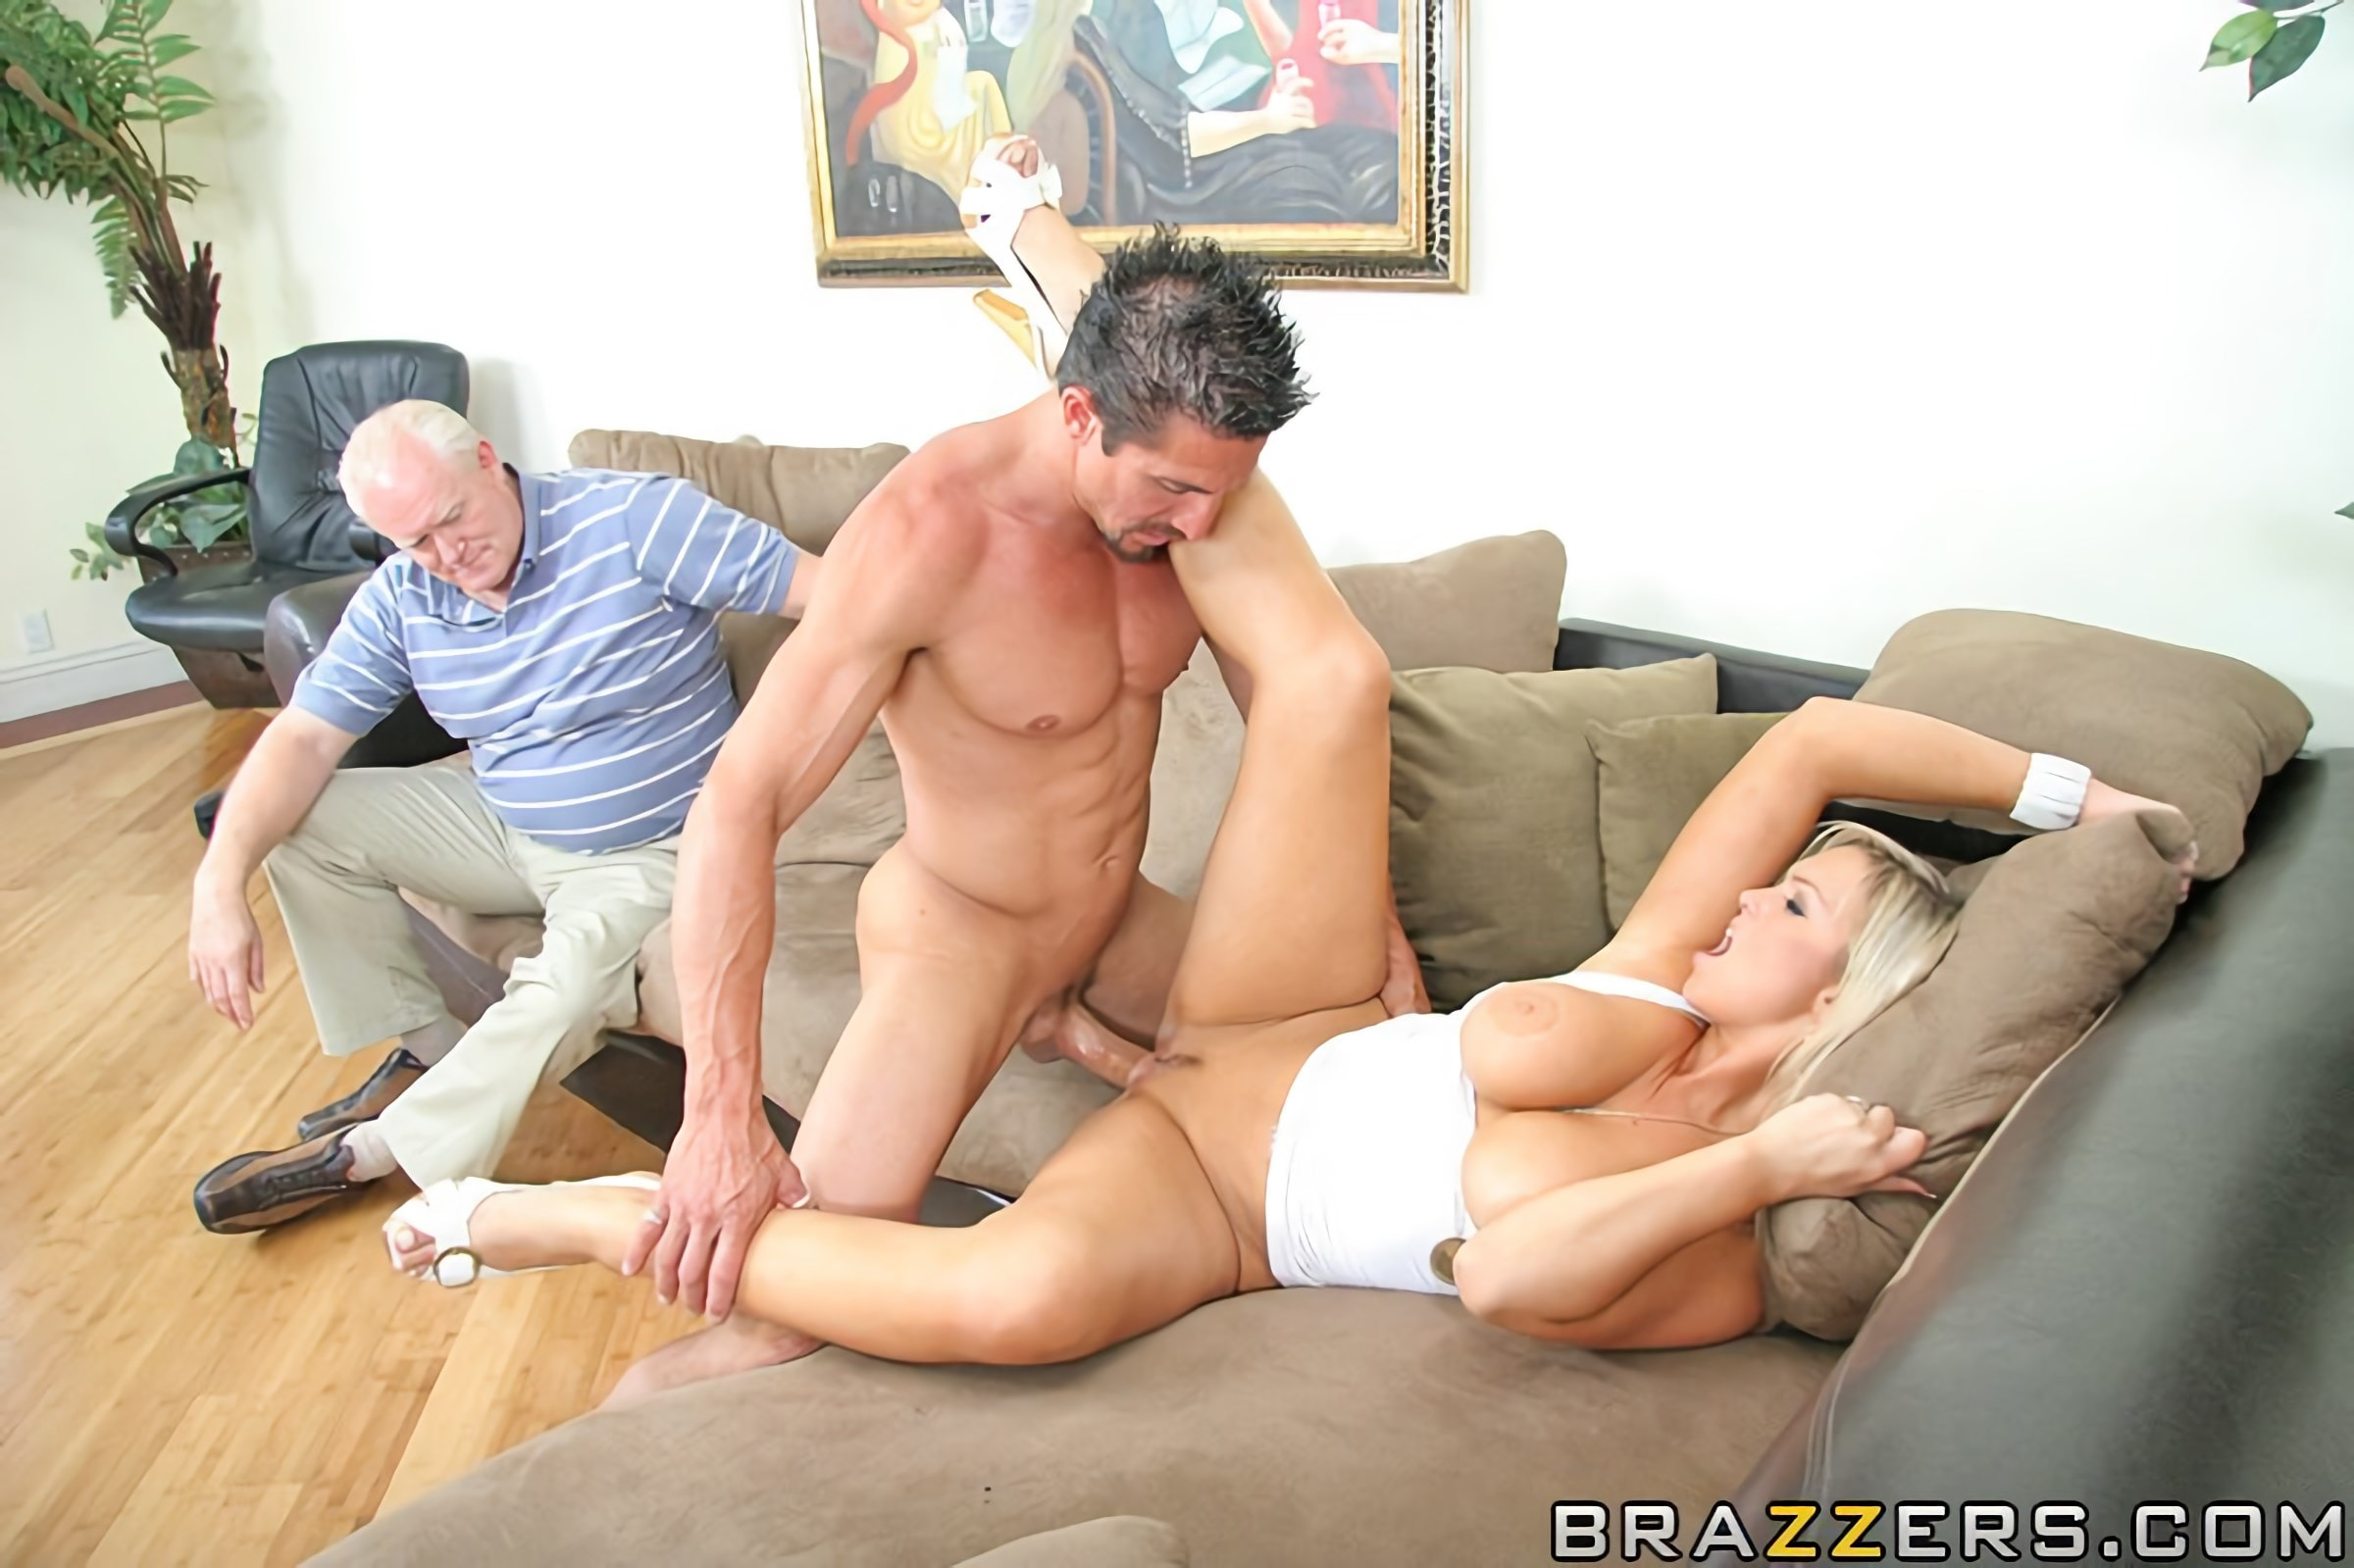 Handsome man is fucking his elderly landlord lady to pay the rent, free porn